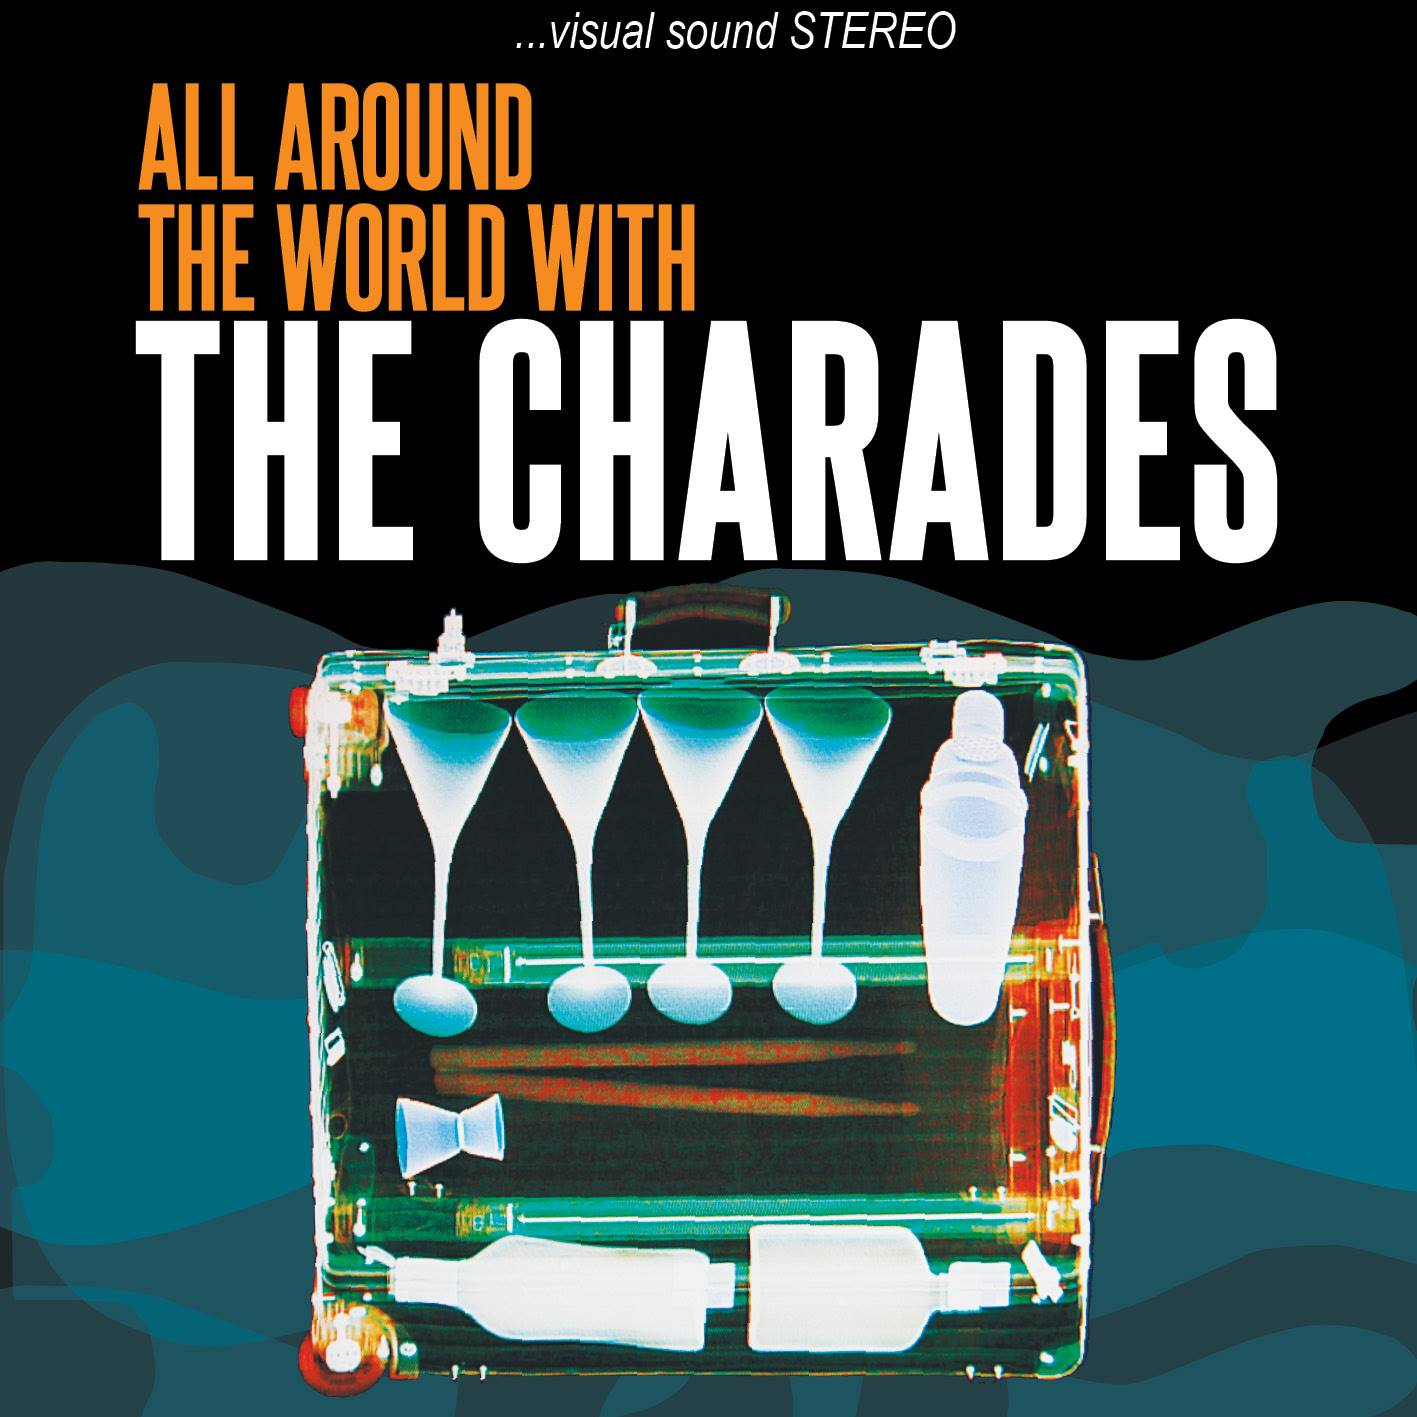 The Charades - All Around the World With